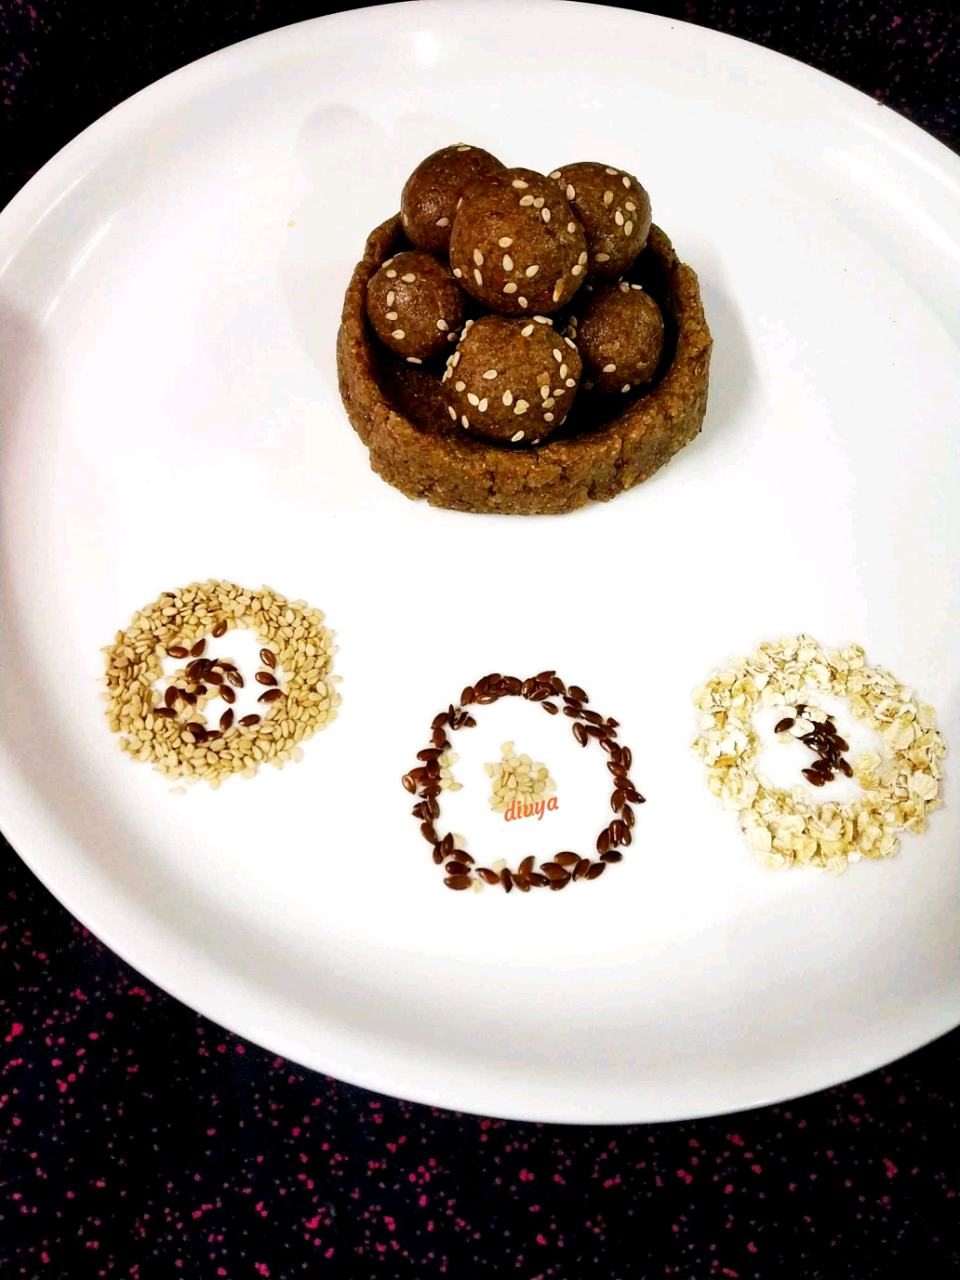 Protein Packed Oats Flax Seeds Laddu